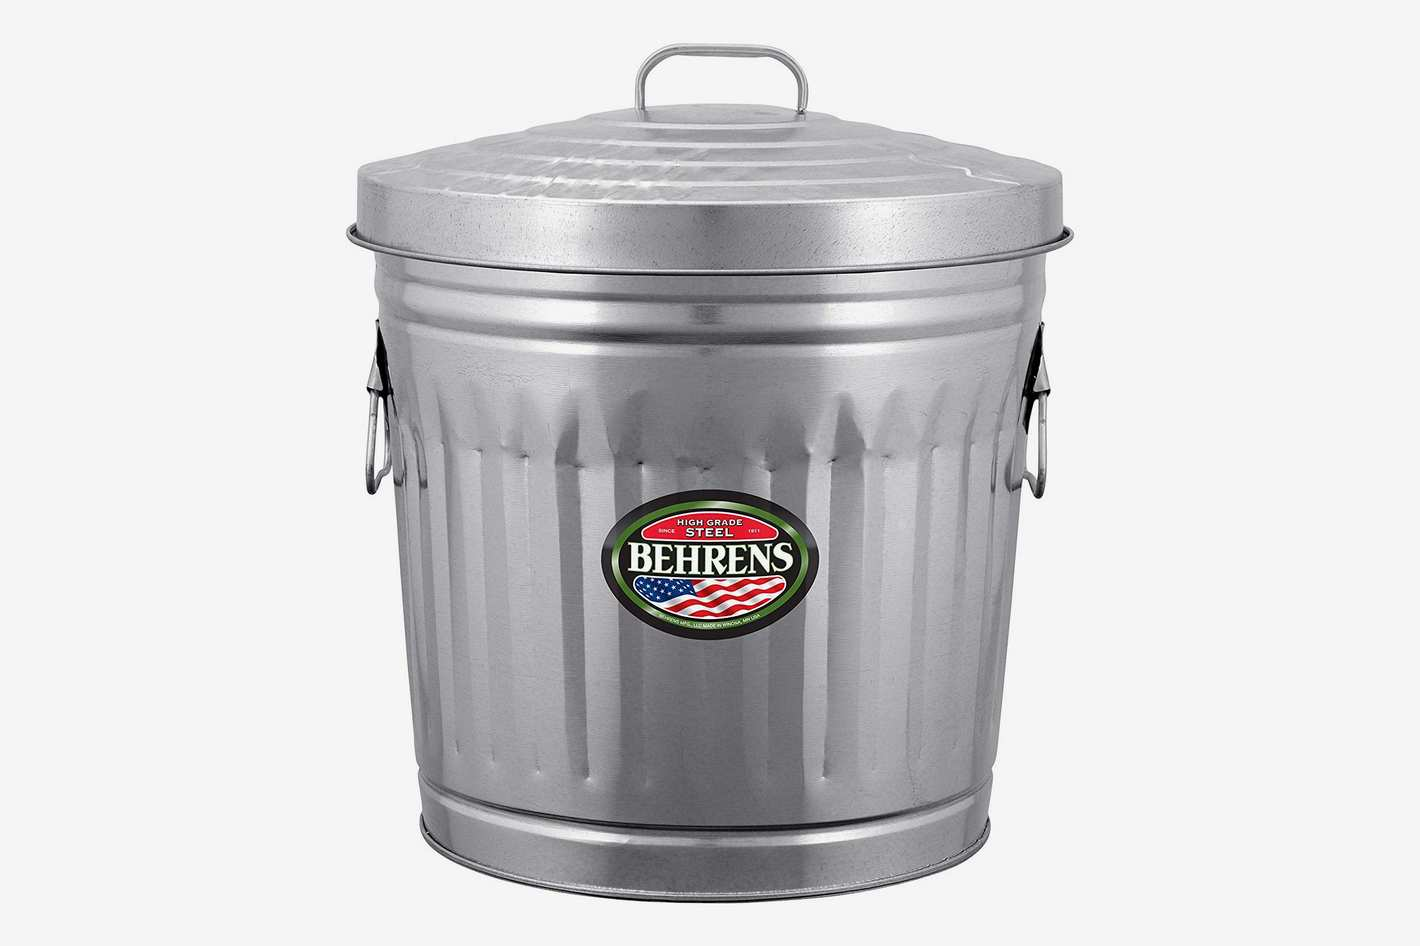 Behrens Galvanized Steel Trash Can, 10-Gallon